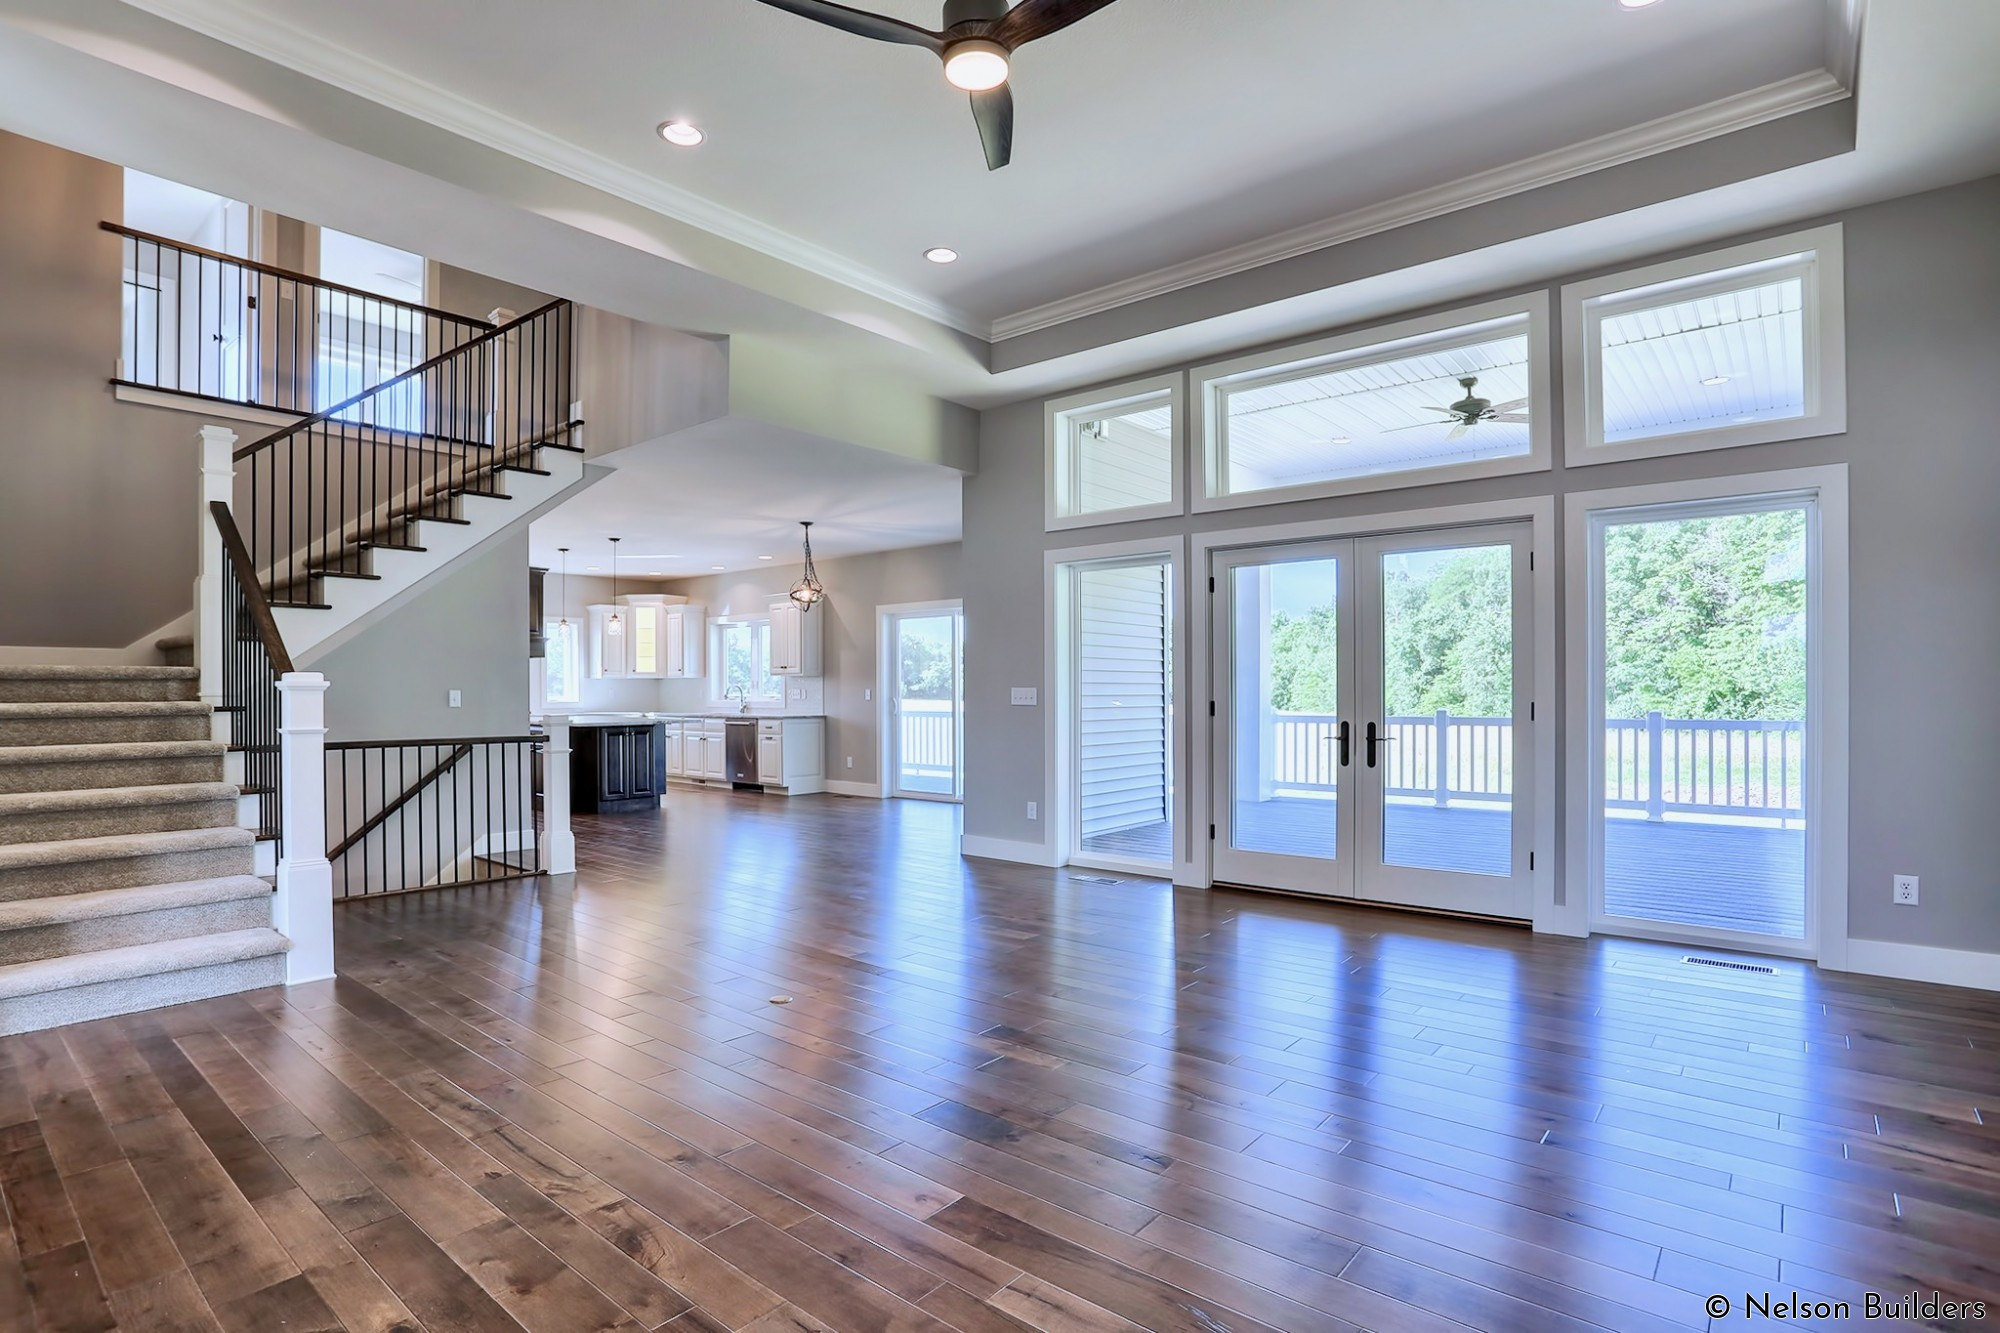 Even with a second floor above part of this home, the main living area feels open with the nearly 12-foot ceilings stretched from front to back.